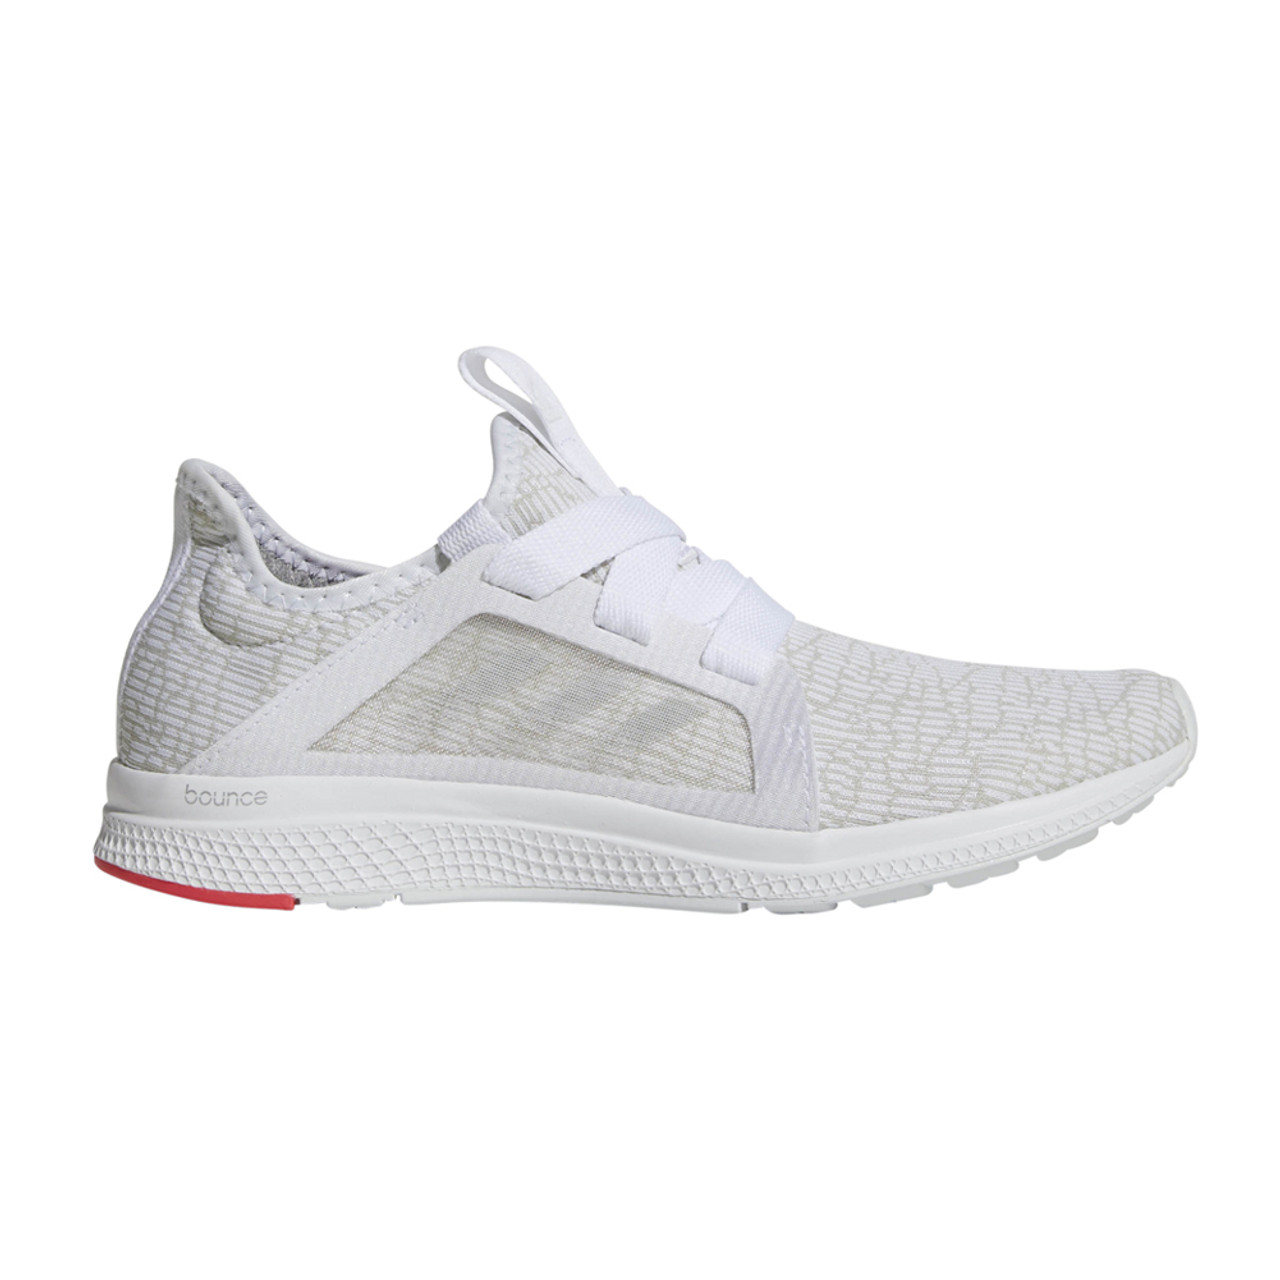 timeless design 47ae9 b1e29 Adidas Womens Edge Lux Running Shoe Running White - Shop now  Shoolu.com